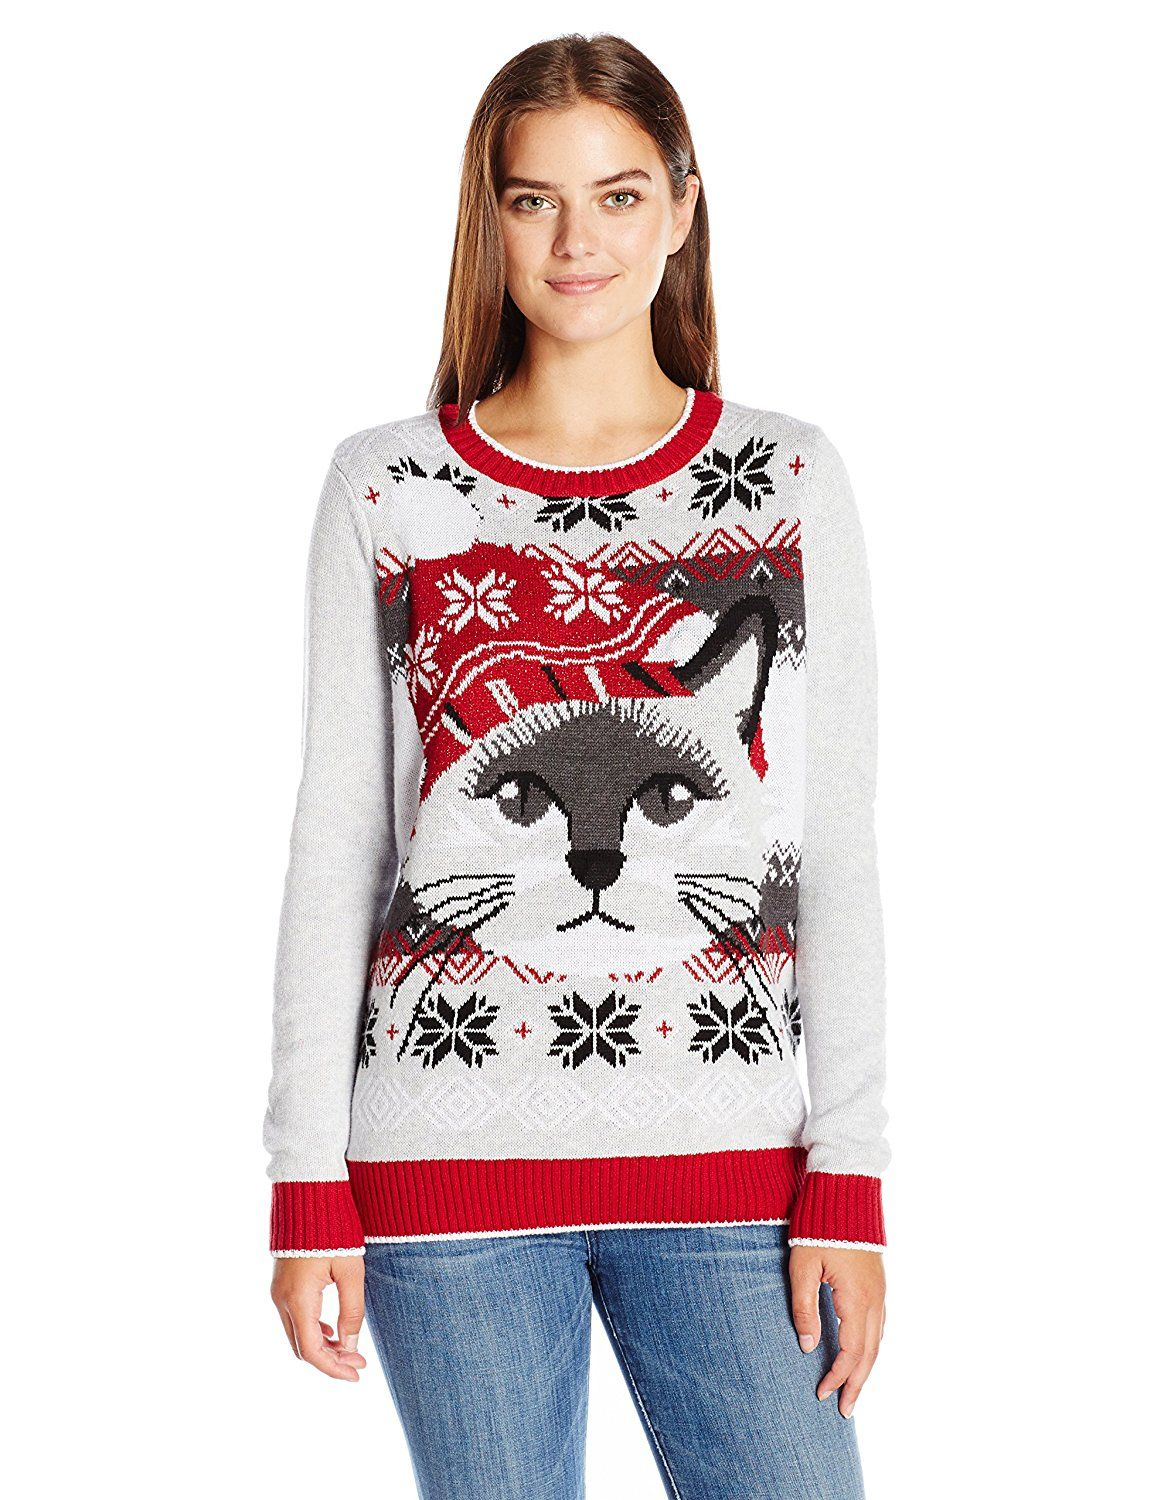 Amazoncom Ugly Christmas Sweater Womens Light Up Cat Face Silver